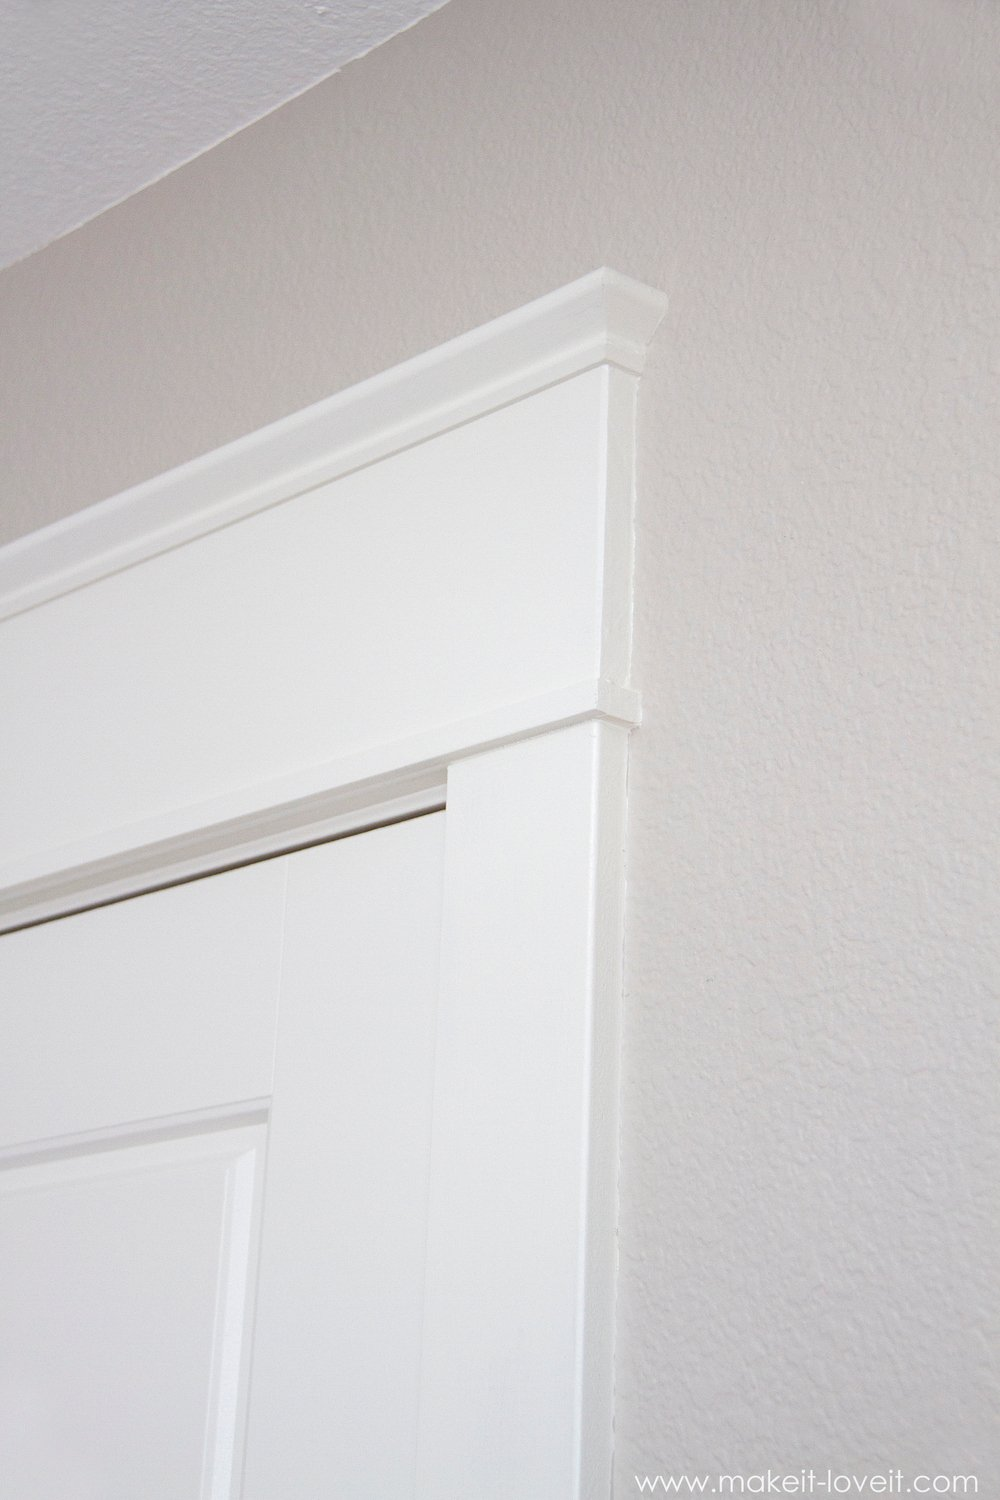 Installing A Pre Hung Door The Easy Way And Trimming